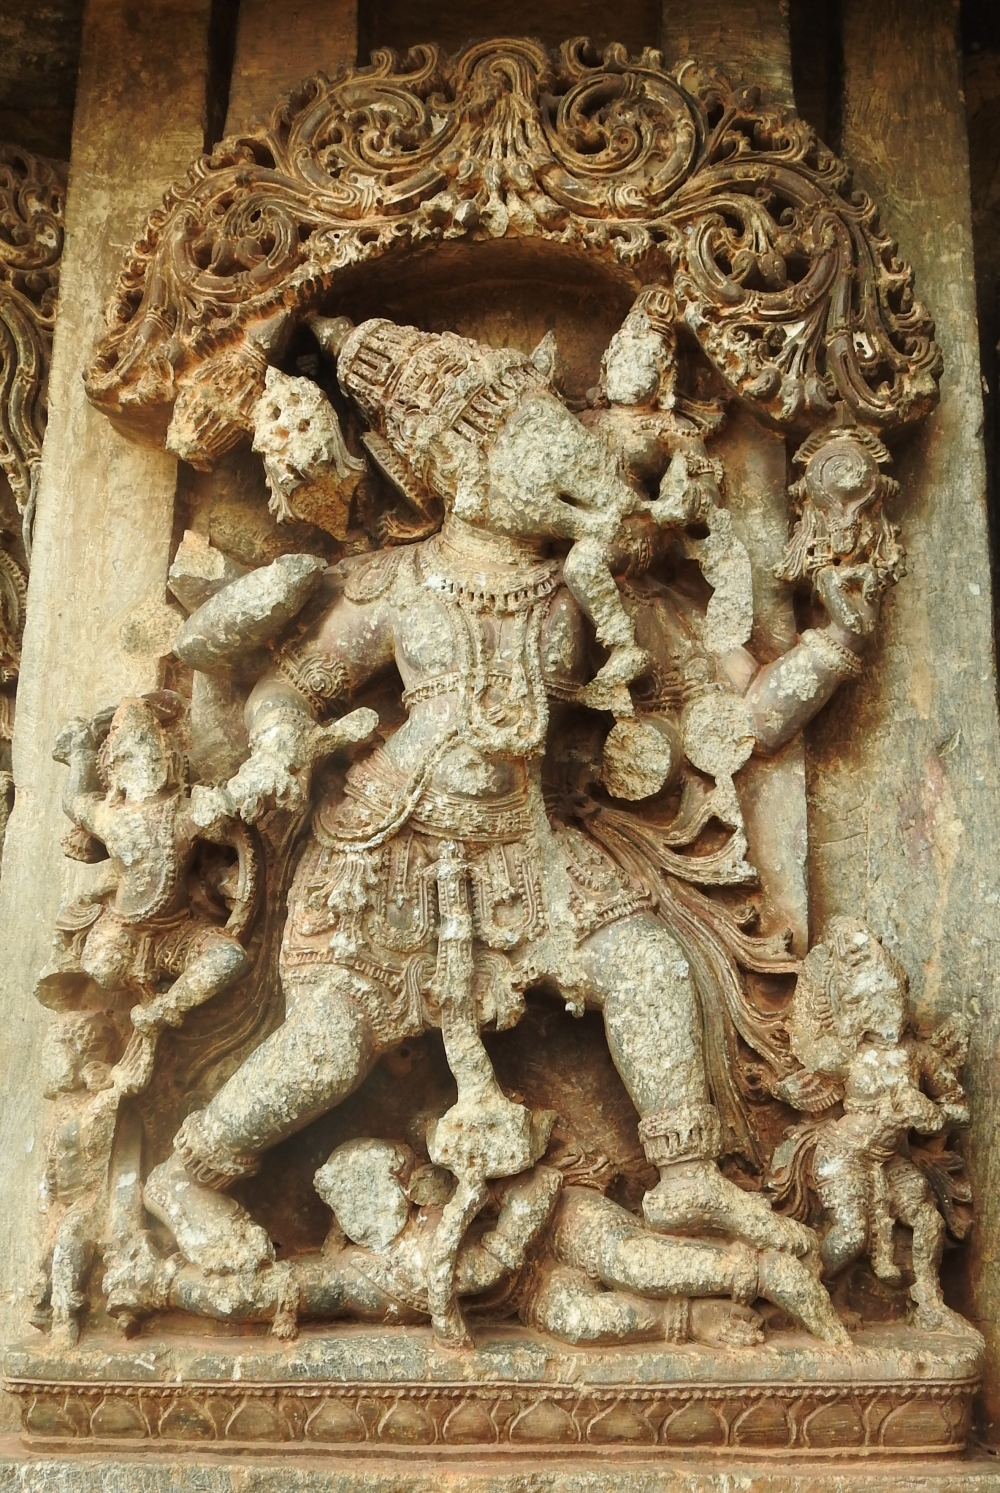 Fig. 11: The image of Bhuvaraha recovering Bhudevi from the depths of the ocean displayed on the jangha. Bhudevi is perched on the tusks of the Varaha while he is shown fighting with demon Hiranyaksha.